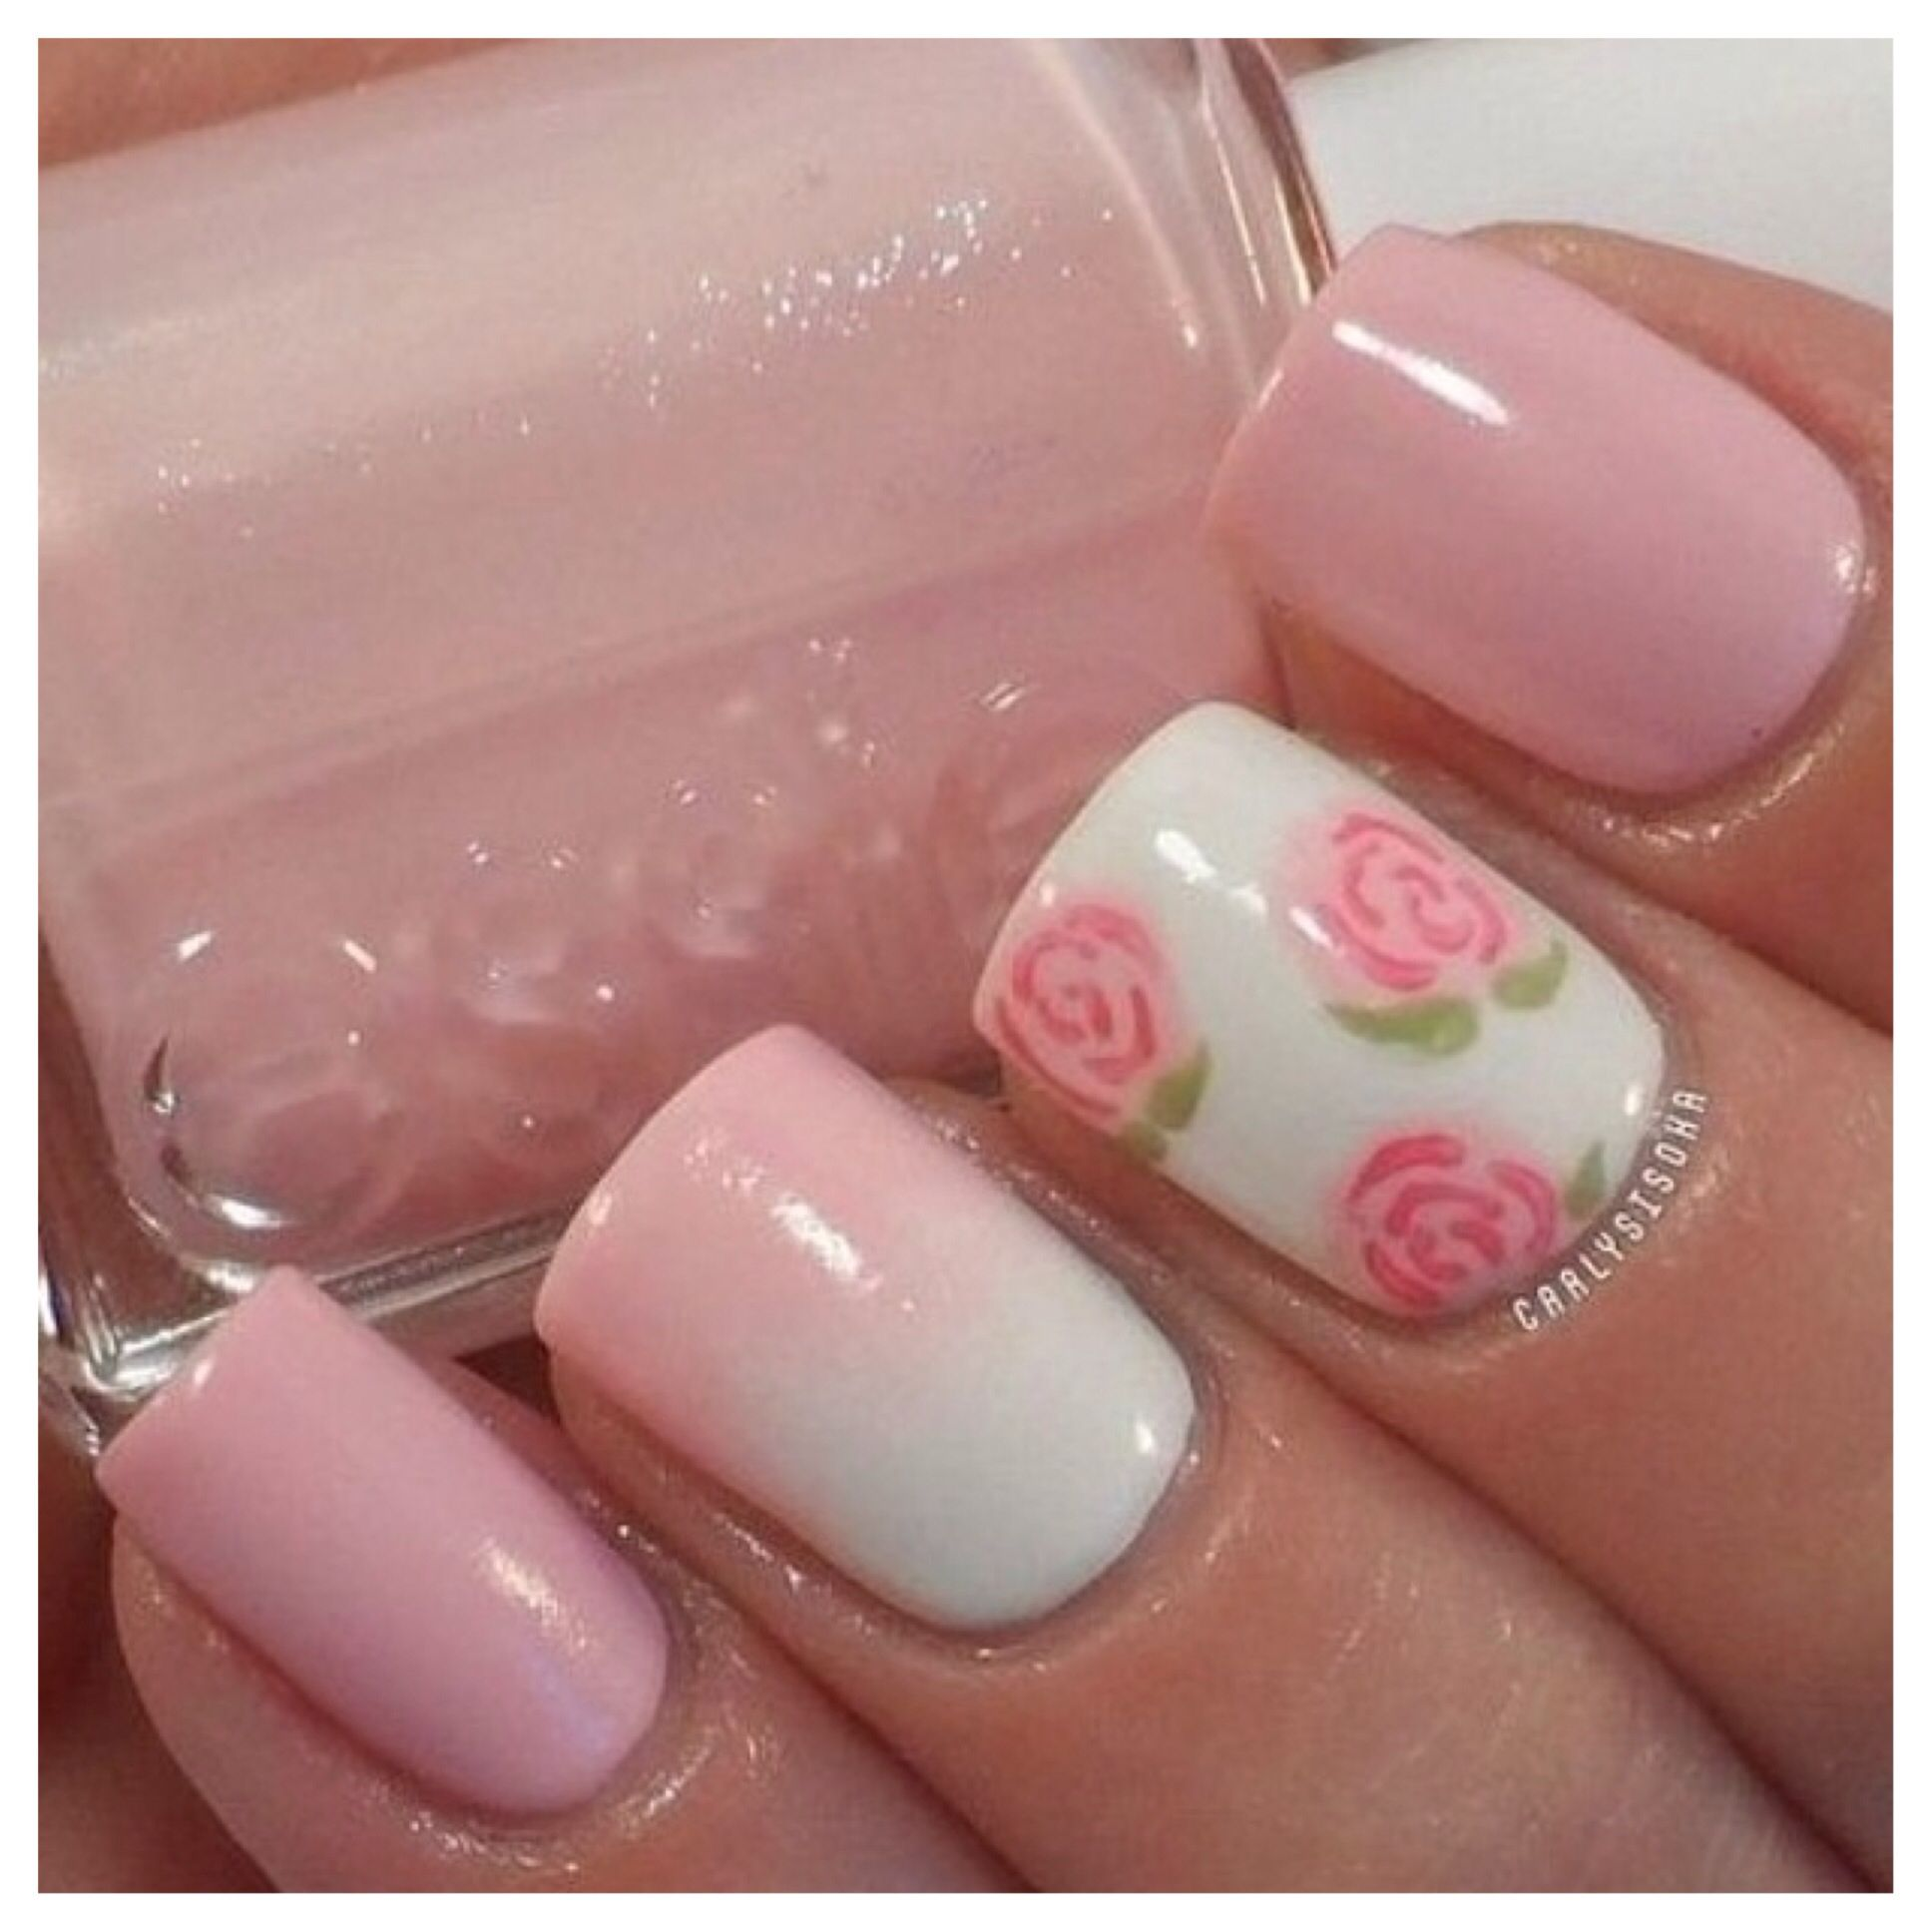 Love the gradient and flower!